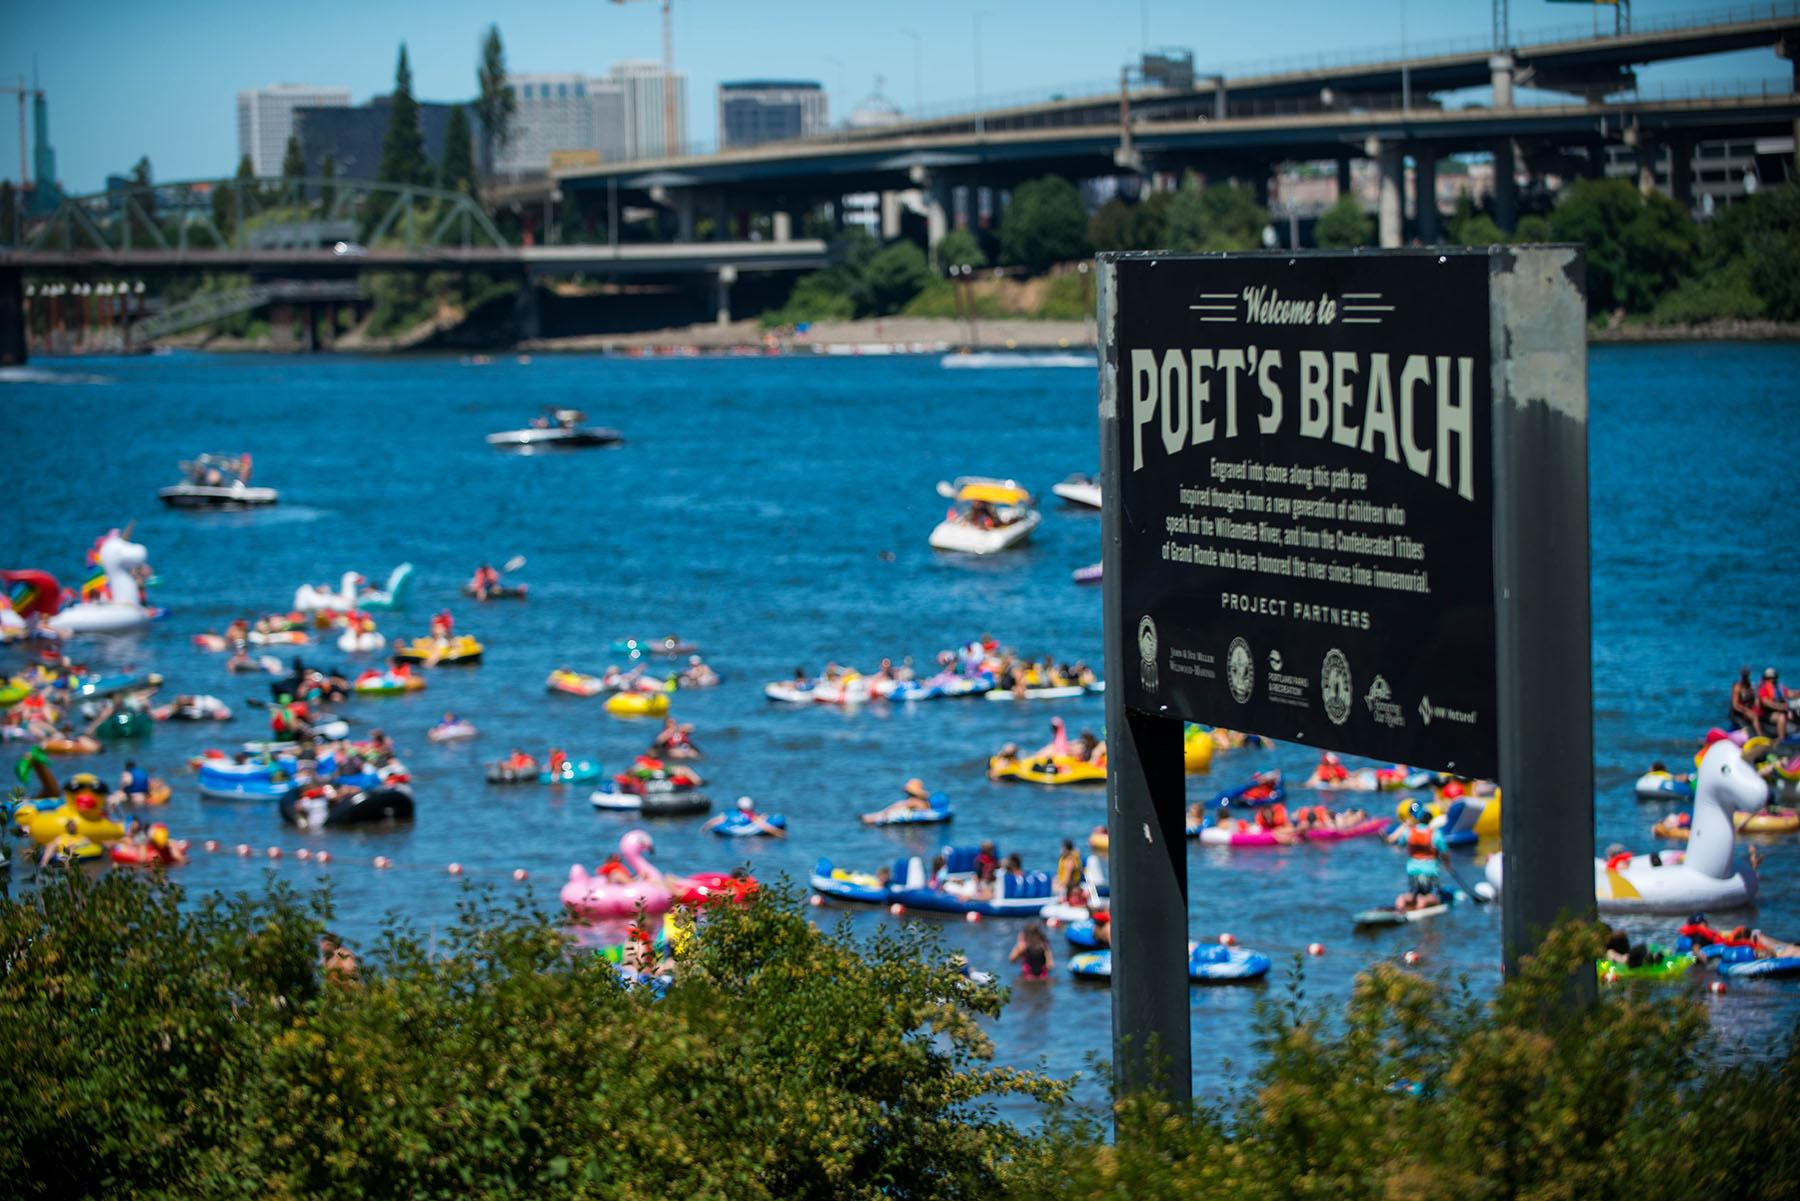 Water lovers hit the Willamette River Saturday for the 8th annual Big Float, hosted by the Human Access Project – a group devoted to increasing access to the natural resource that runs through the city. On floats or in boats, thousands started off at Poet's Beach and journeyed downriver to Tom McCall Waterfront Park. The float is. (Tristan Fortsch/KATU photo taken July 14, 2018)